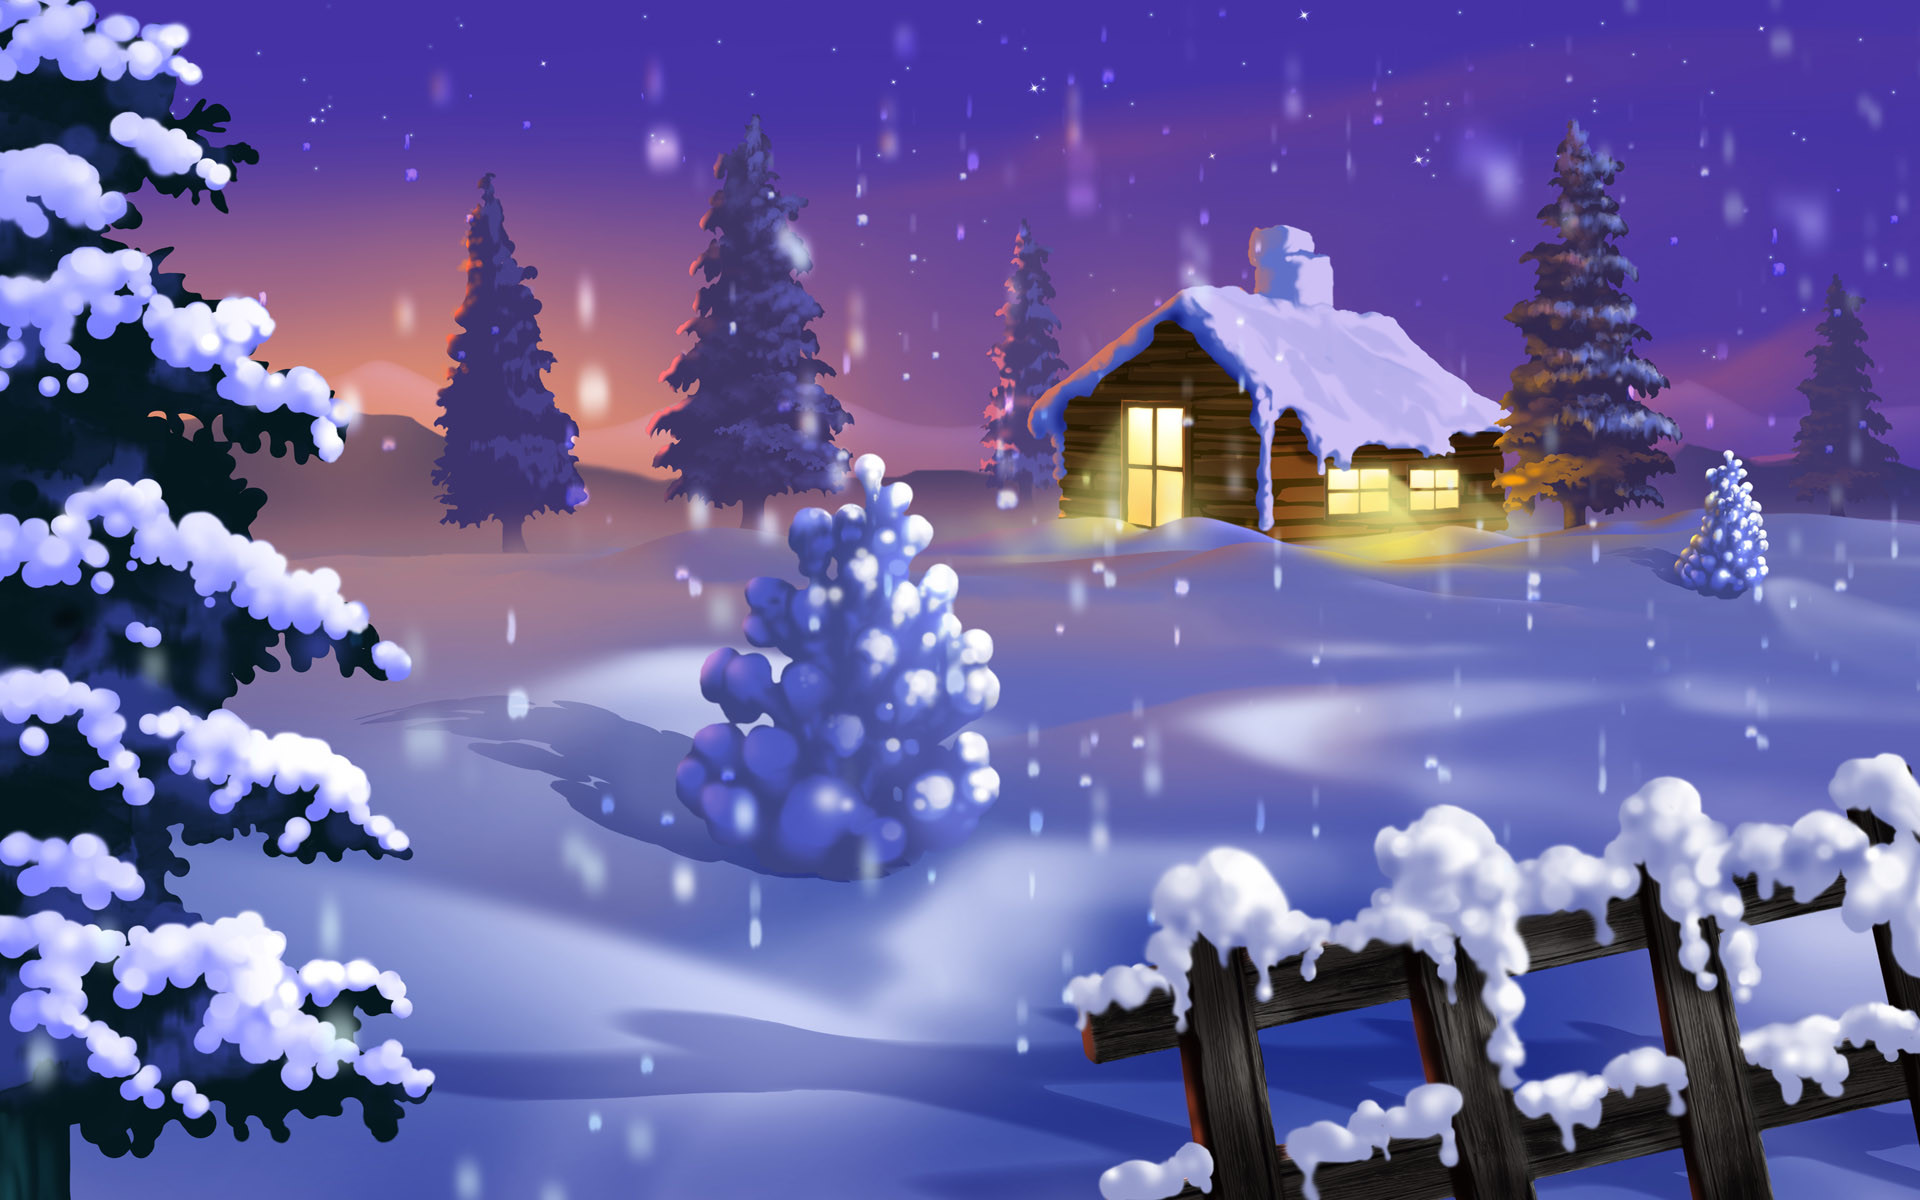 2560x1600 Animated Christmas Wallpapers For We Are Sure That Each Of You Have Your Own Favourite Wallpaper And Love It Makes Feel